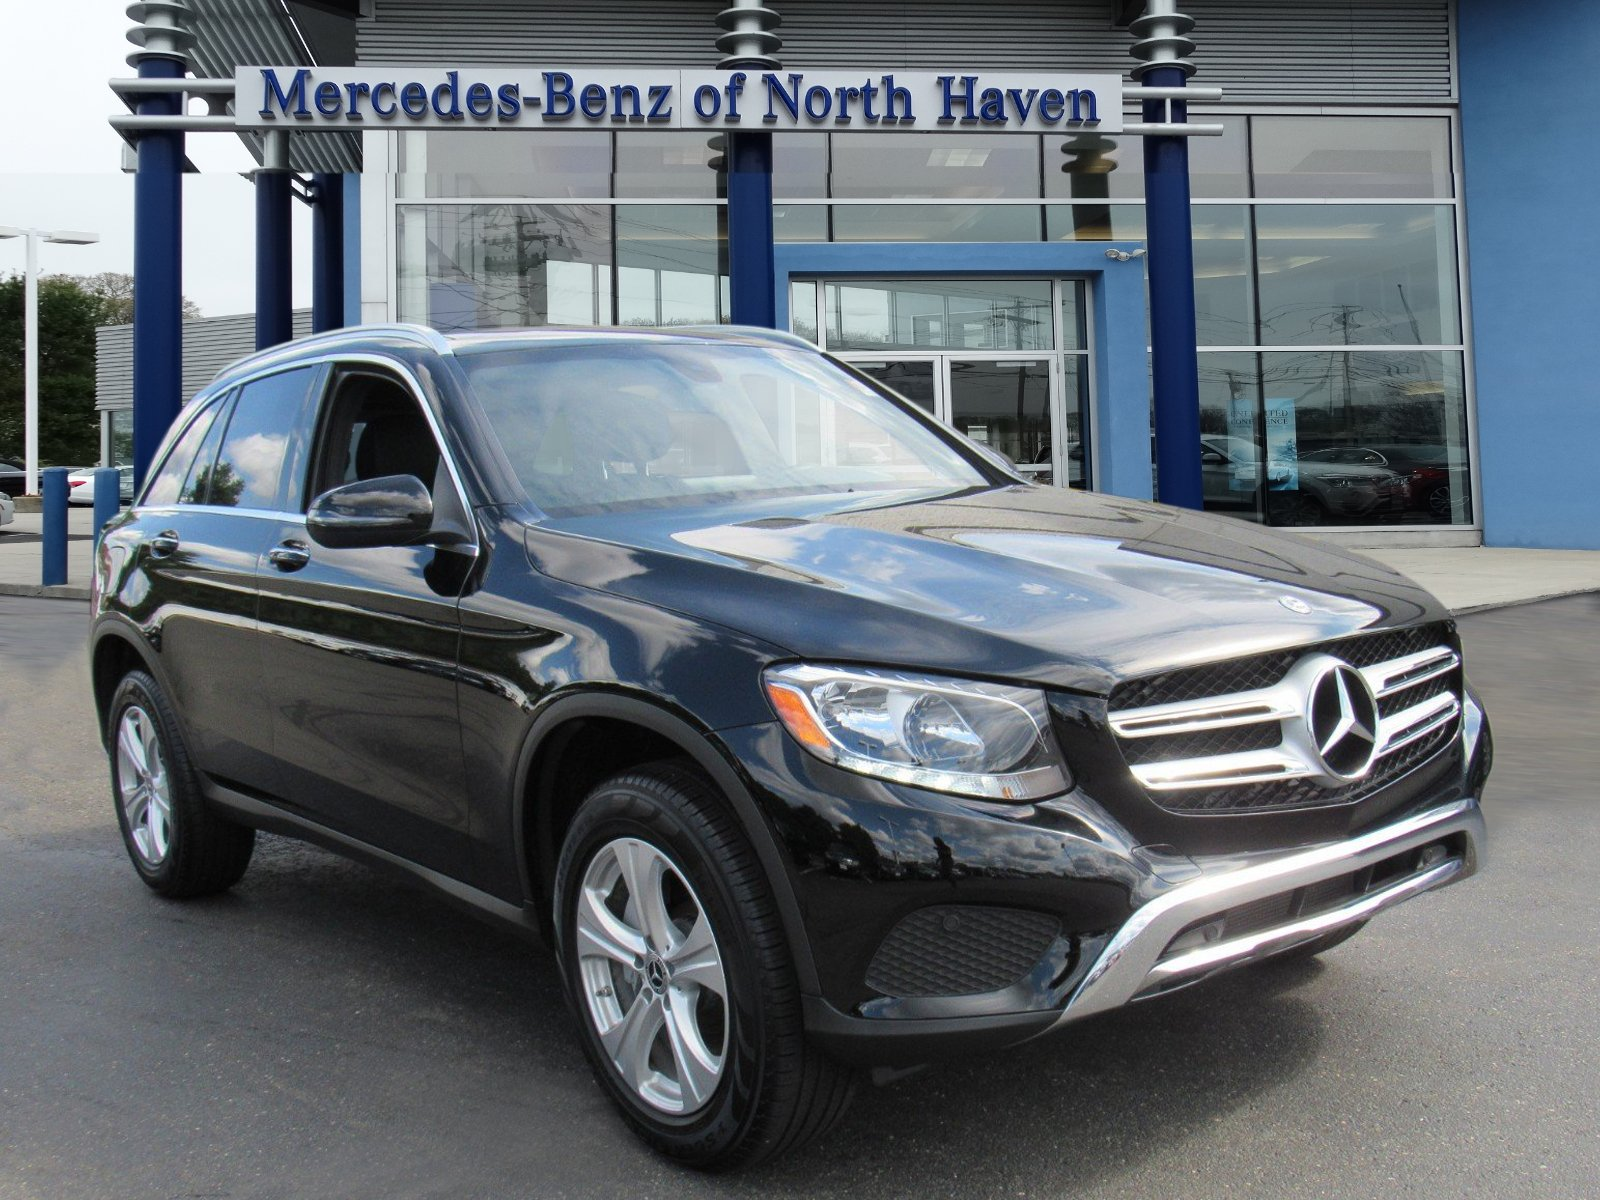 Pre Owned 2018 Mercedes Benz GLC GLC 300 SUV in North Haven M